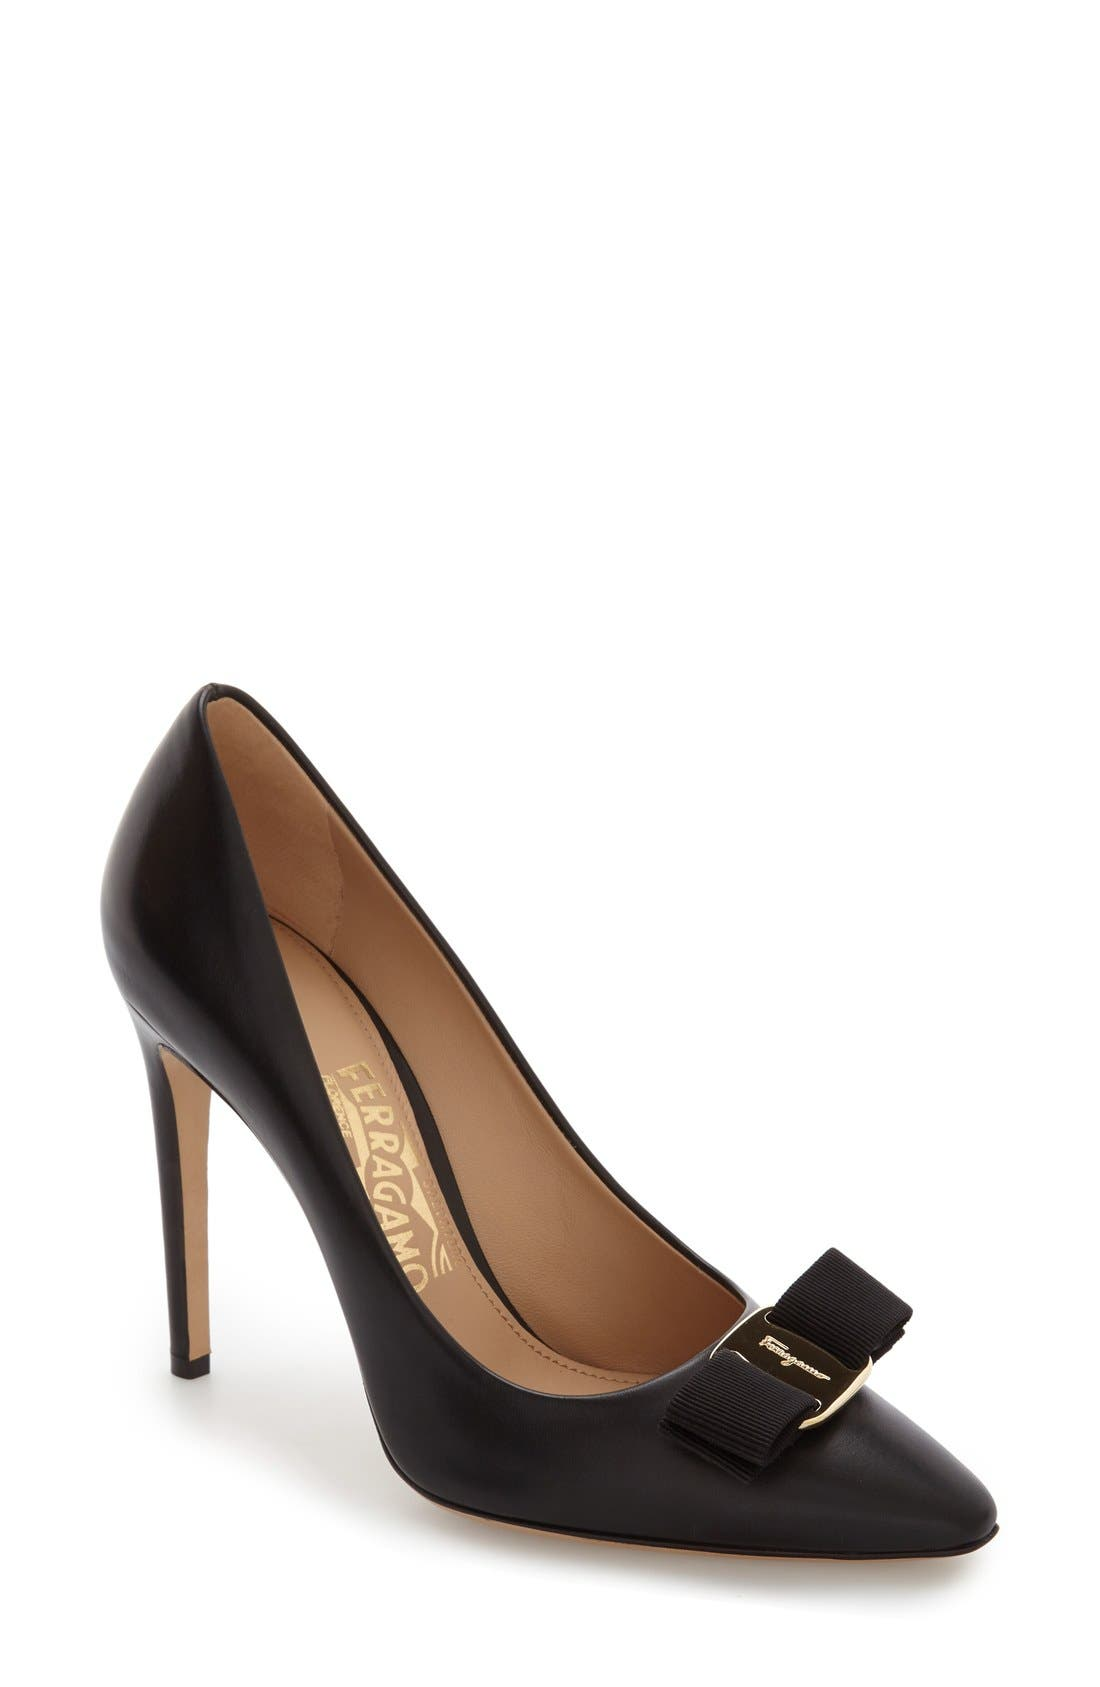 Alternate Image 1 Selected - Salvatore Ferragamo Emy Pointed Toe Bow Pump (Women)